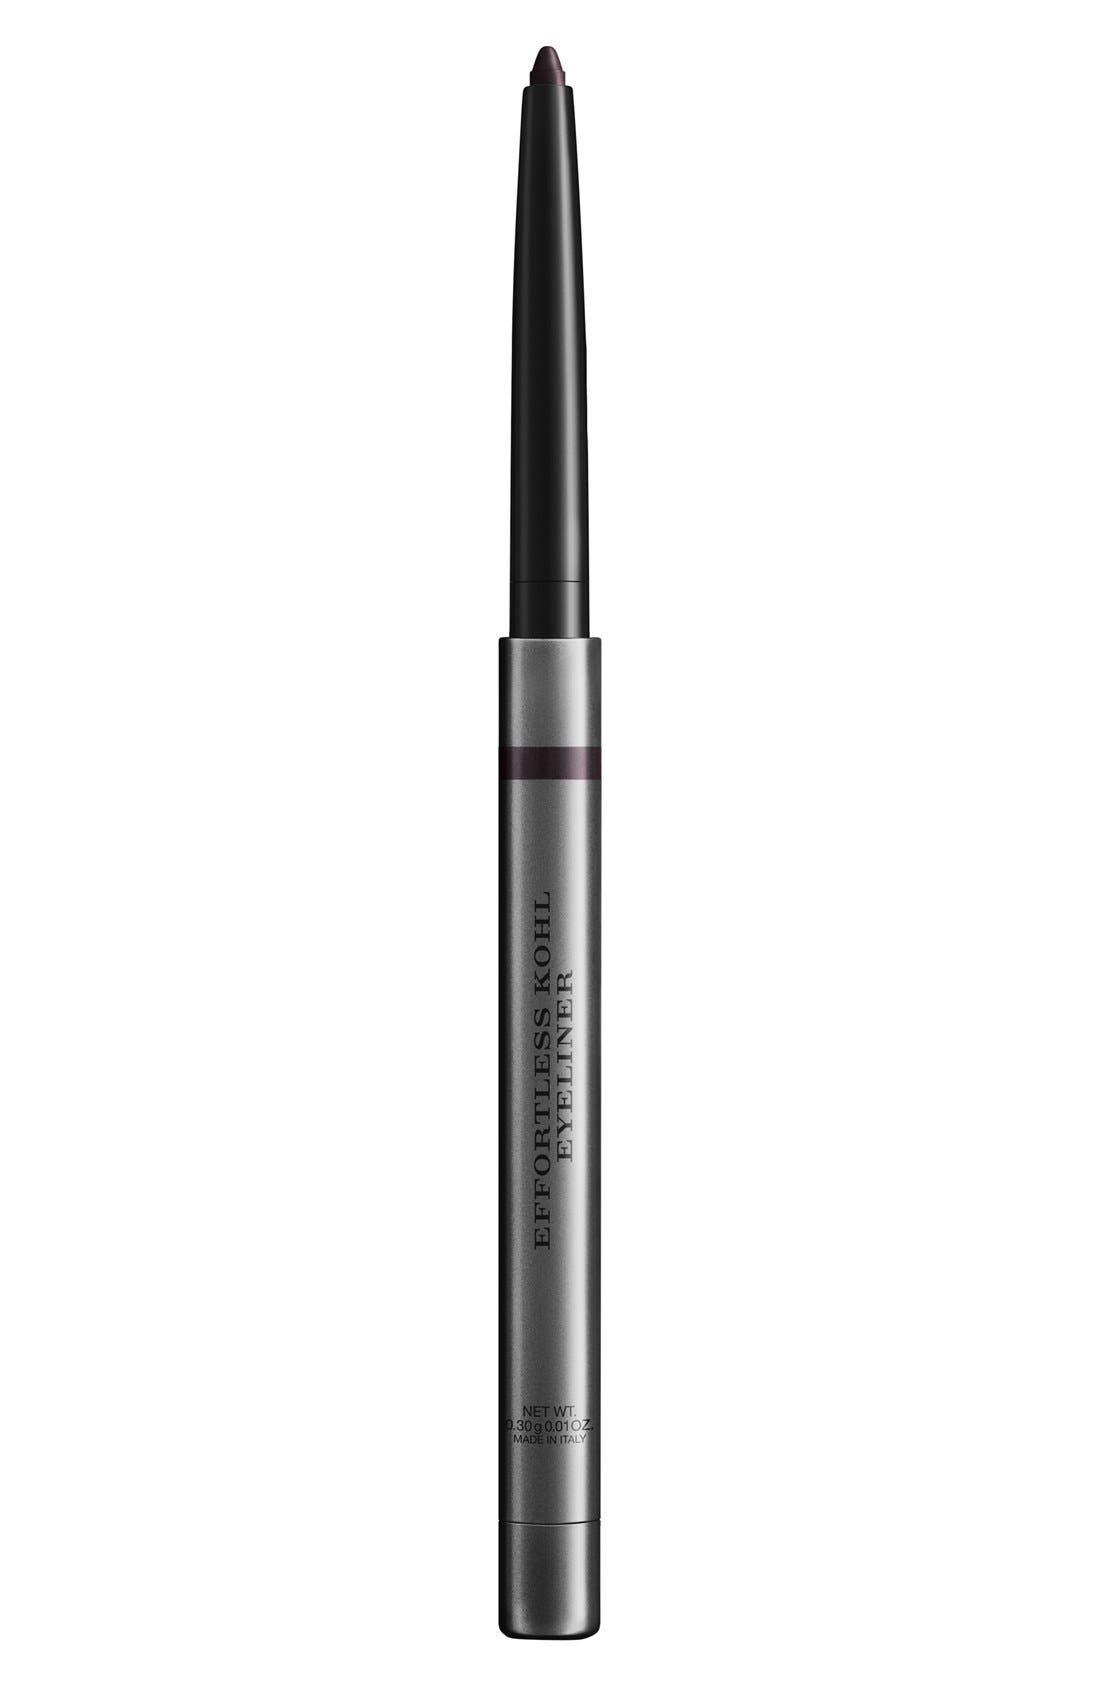 Burberry 'Effortless' Kohl Eyeliner